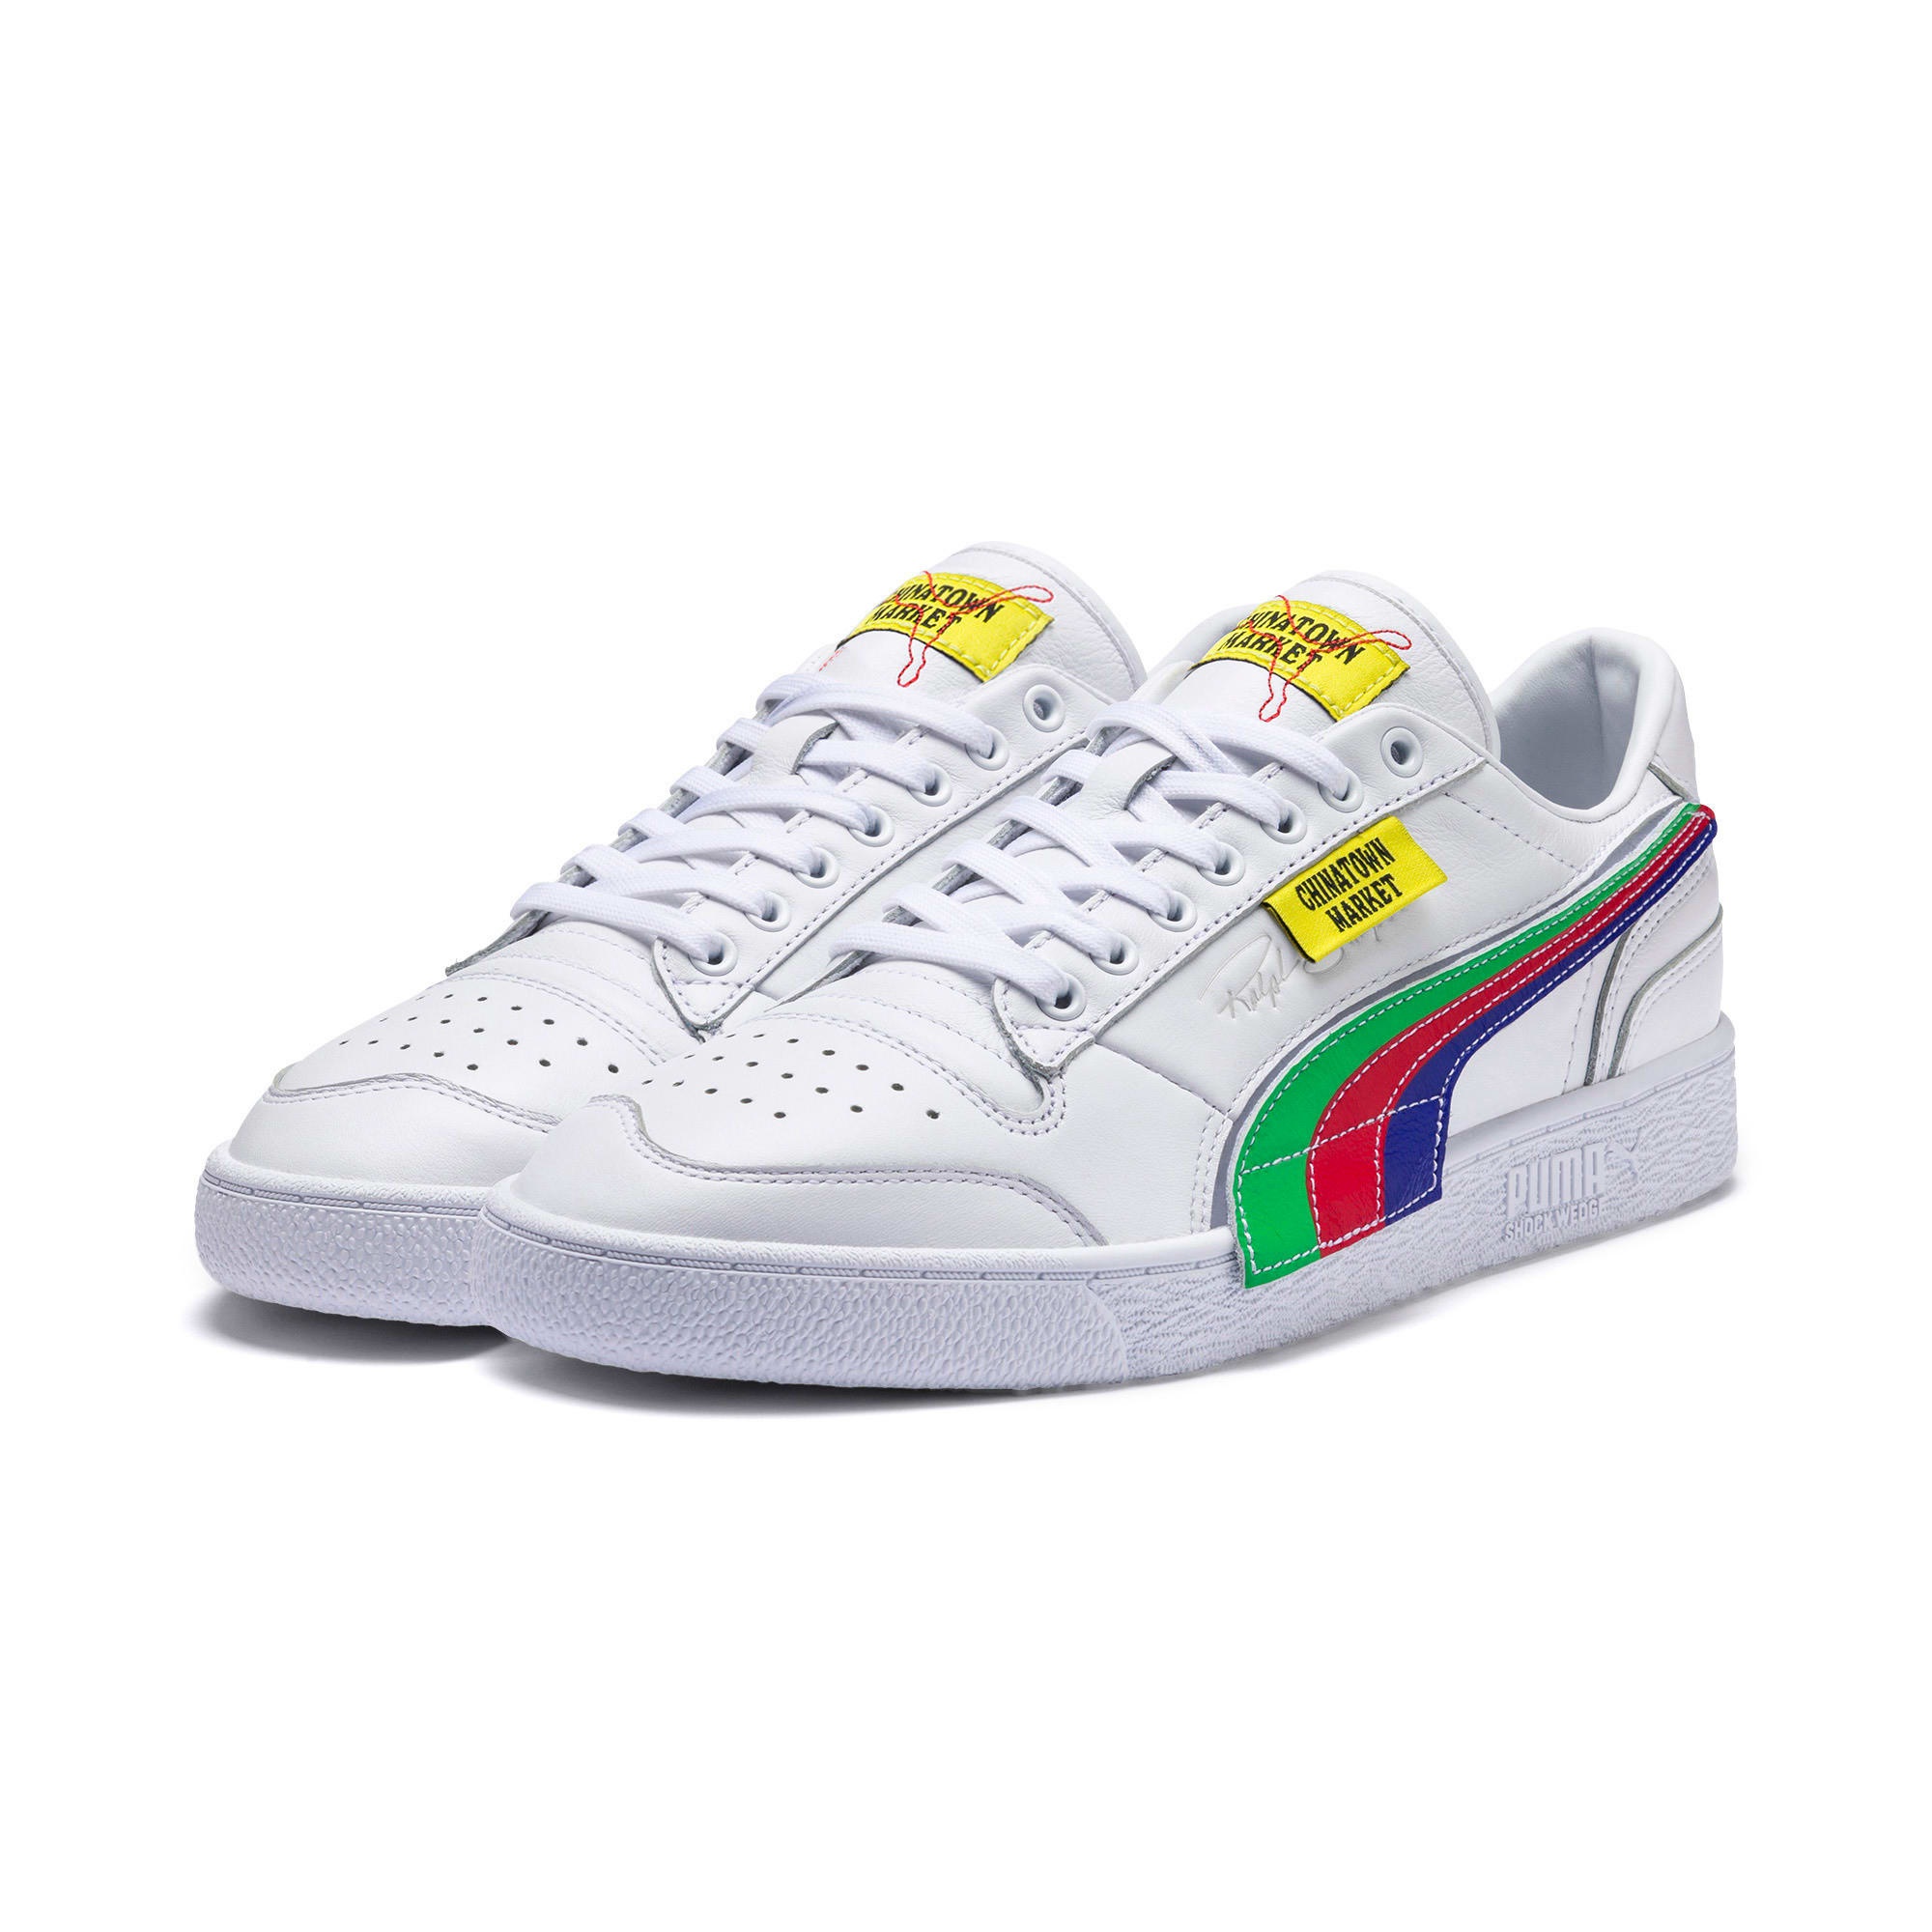 Thumbnail 2 of PUMA x CHINATOWN MARKET Ralph Sampson Lo Sneakers, Puma White, medium